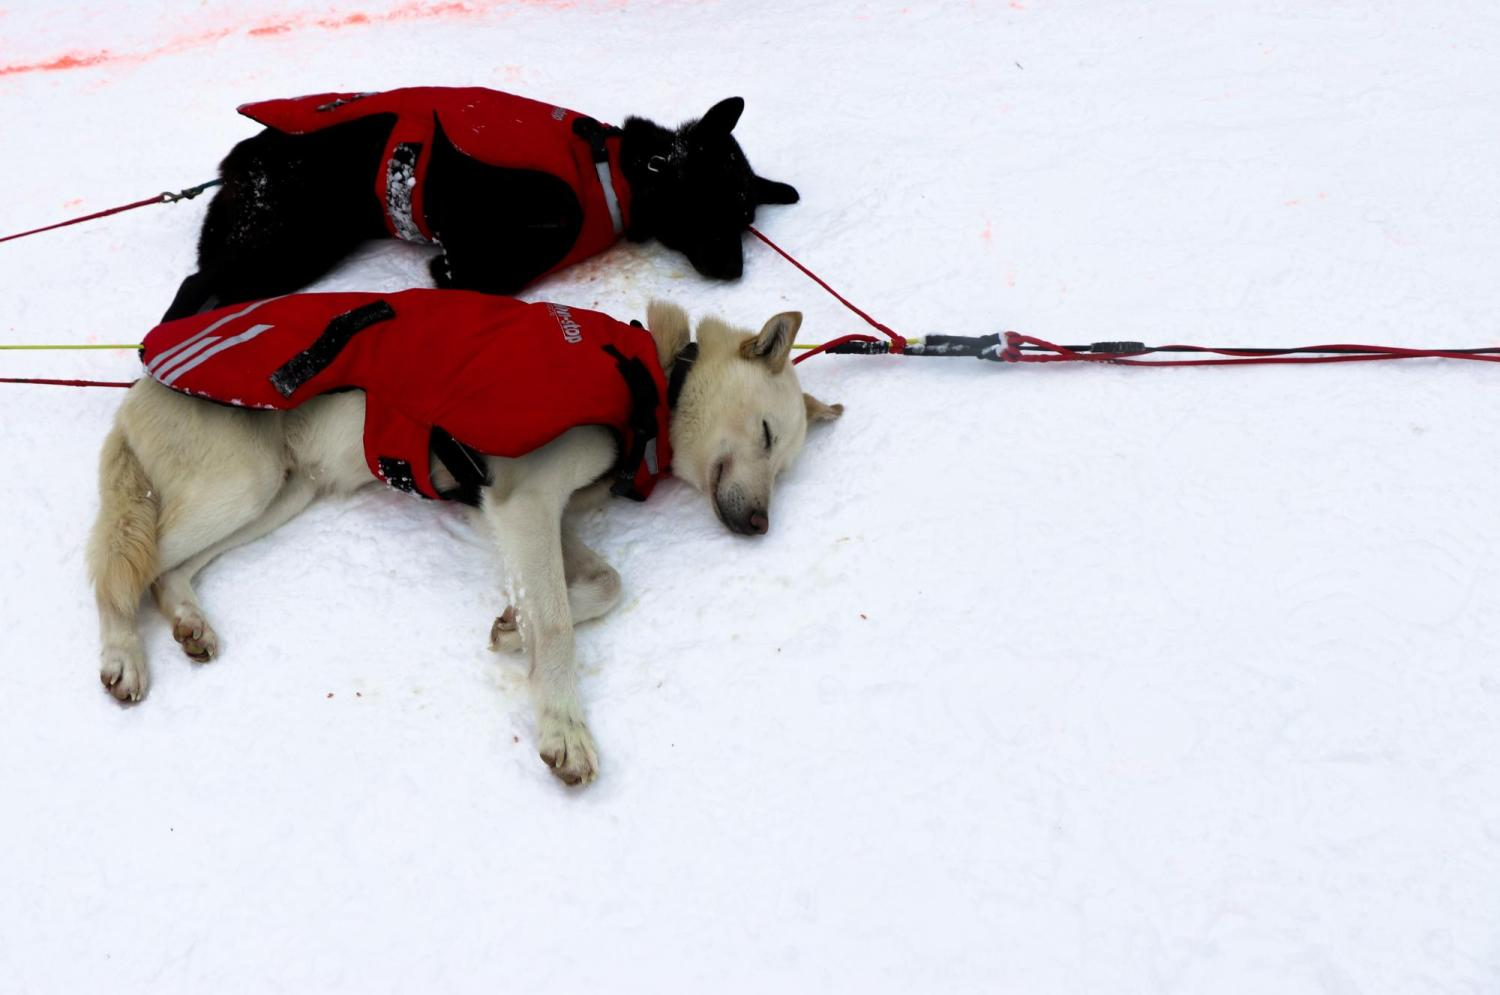 Dogs fall asleep after crossing the finishline in Whitehorse, Canada.